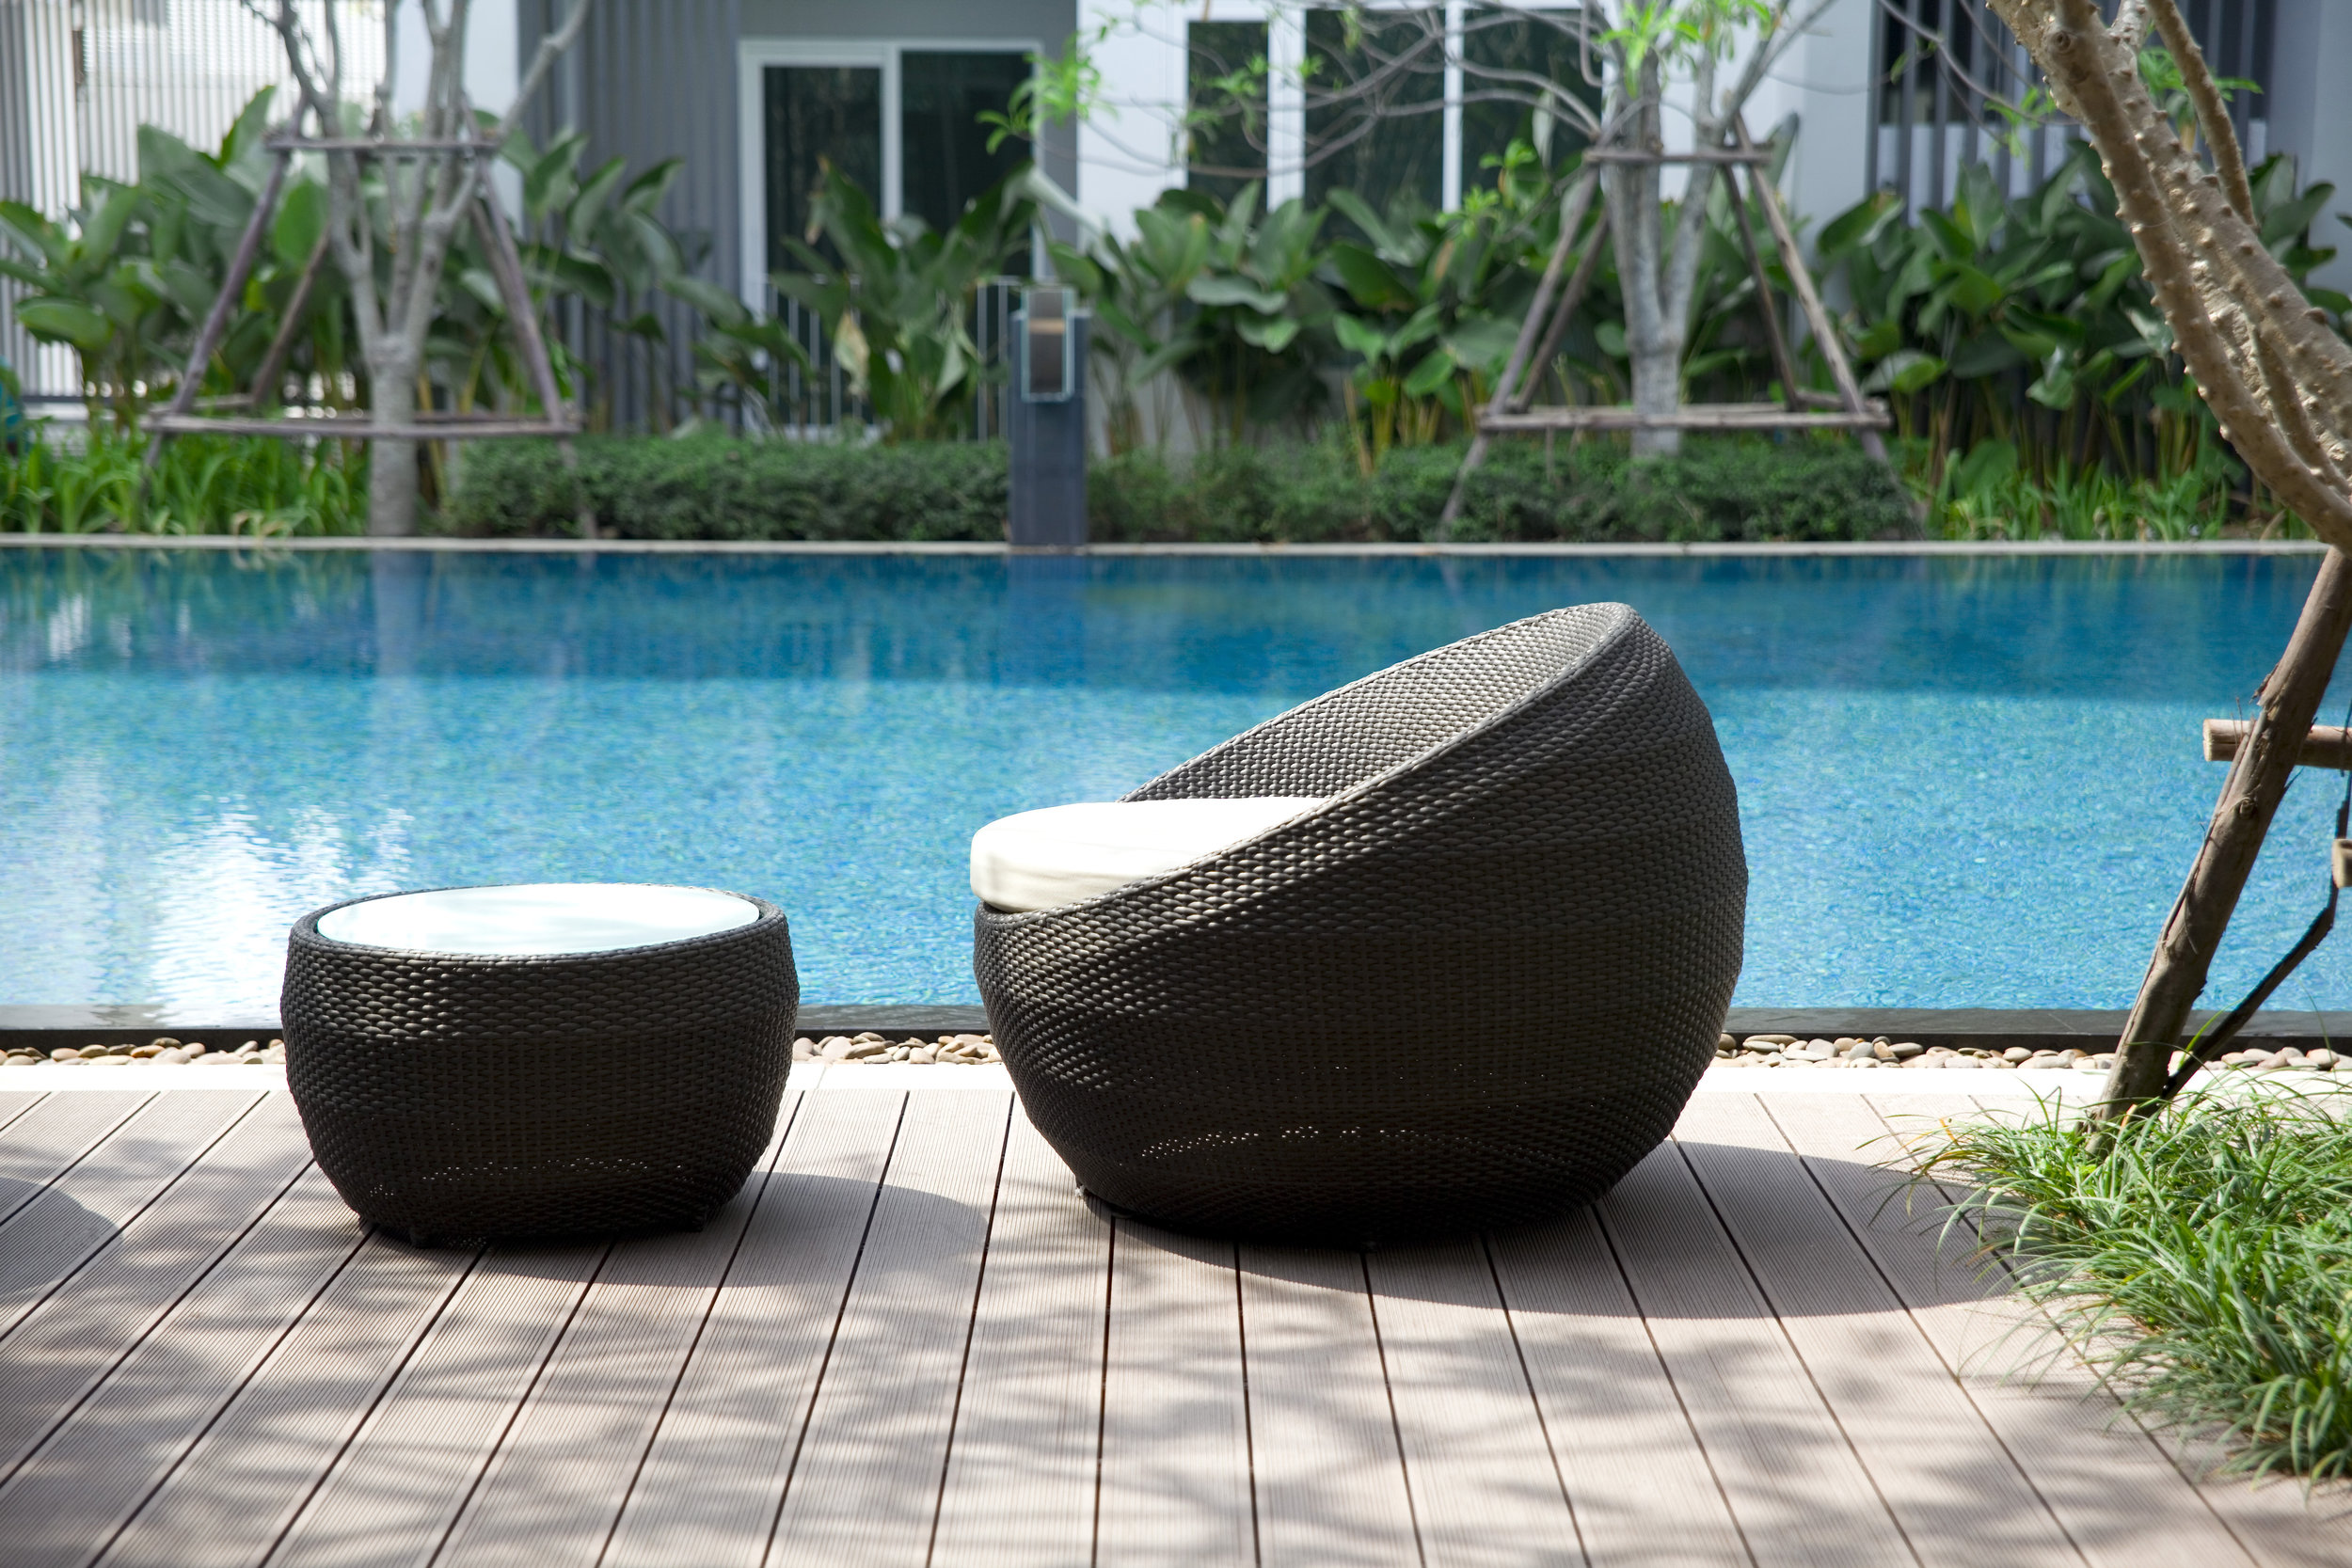 OASIS - The look of wicker marries the resilience of resins